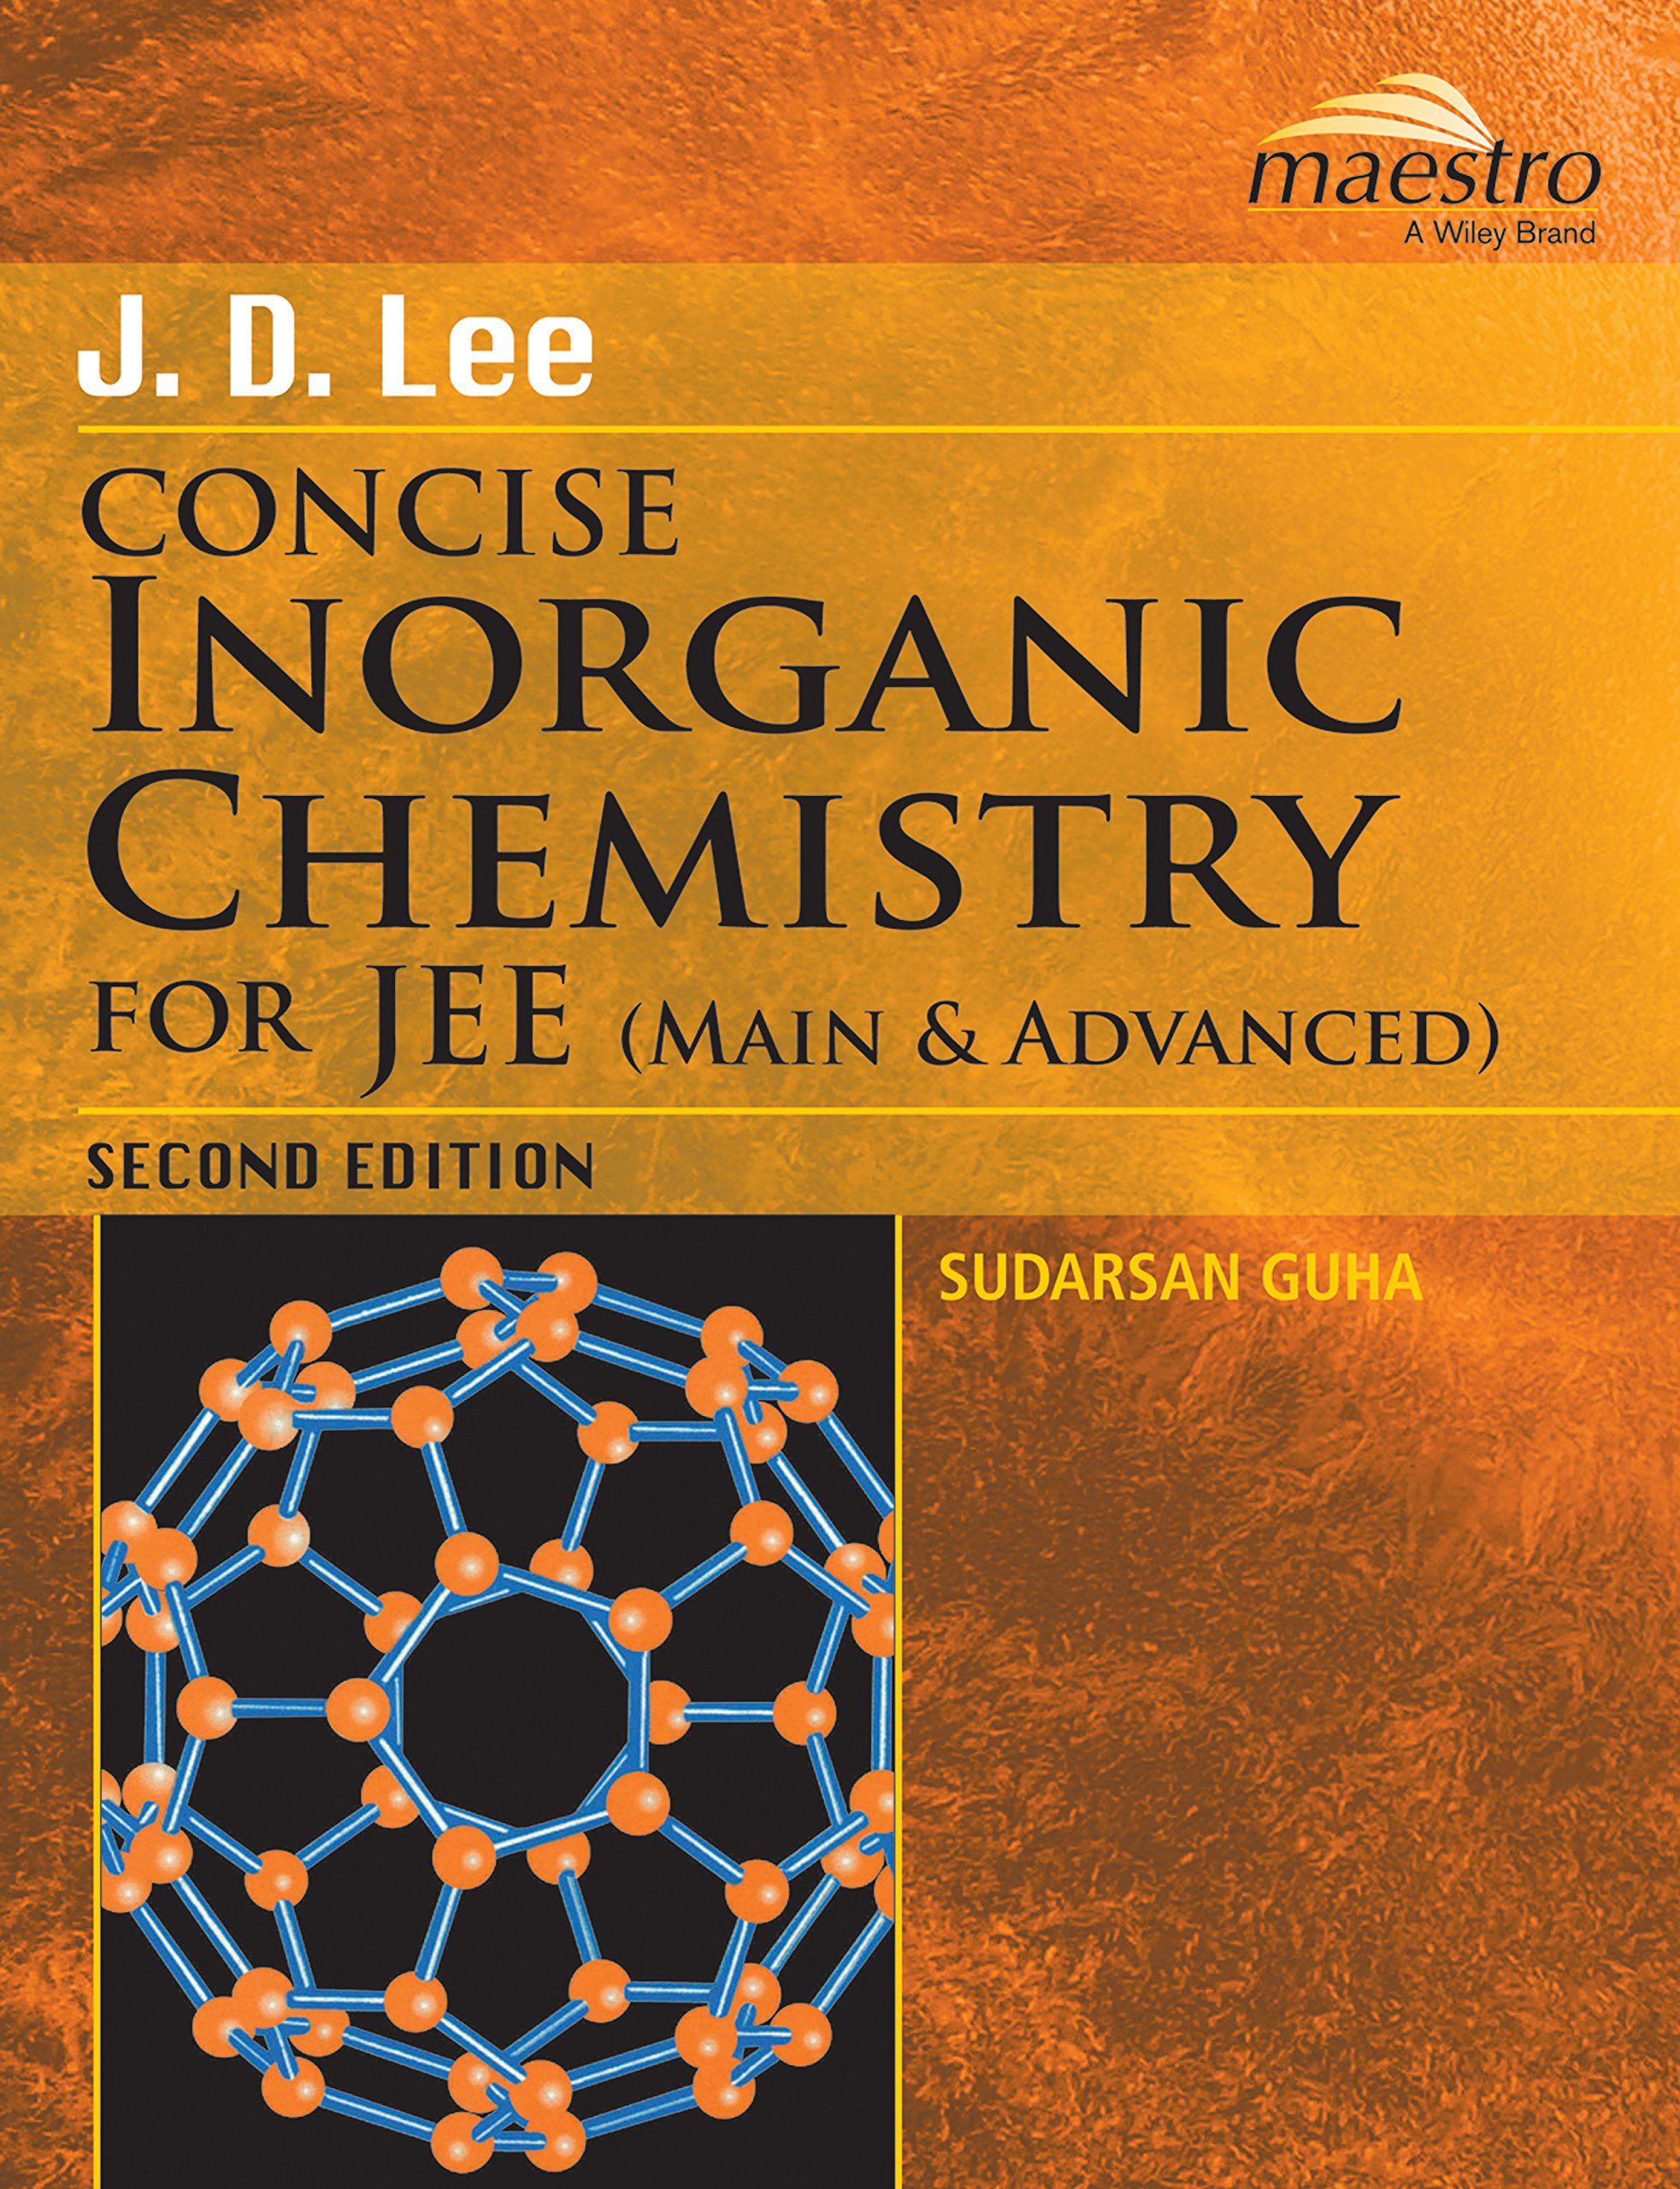 Free download concise inorganic chemistry 4e by j. D. Lee.